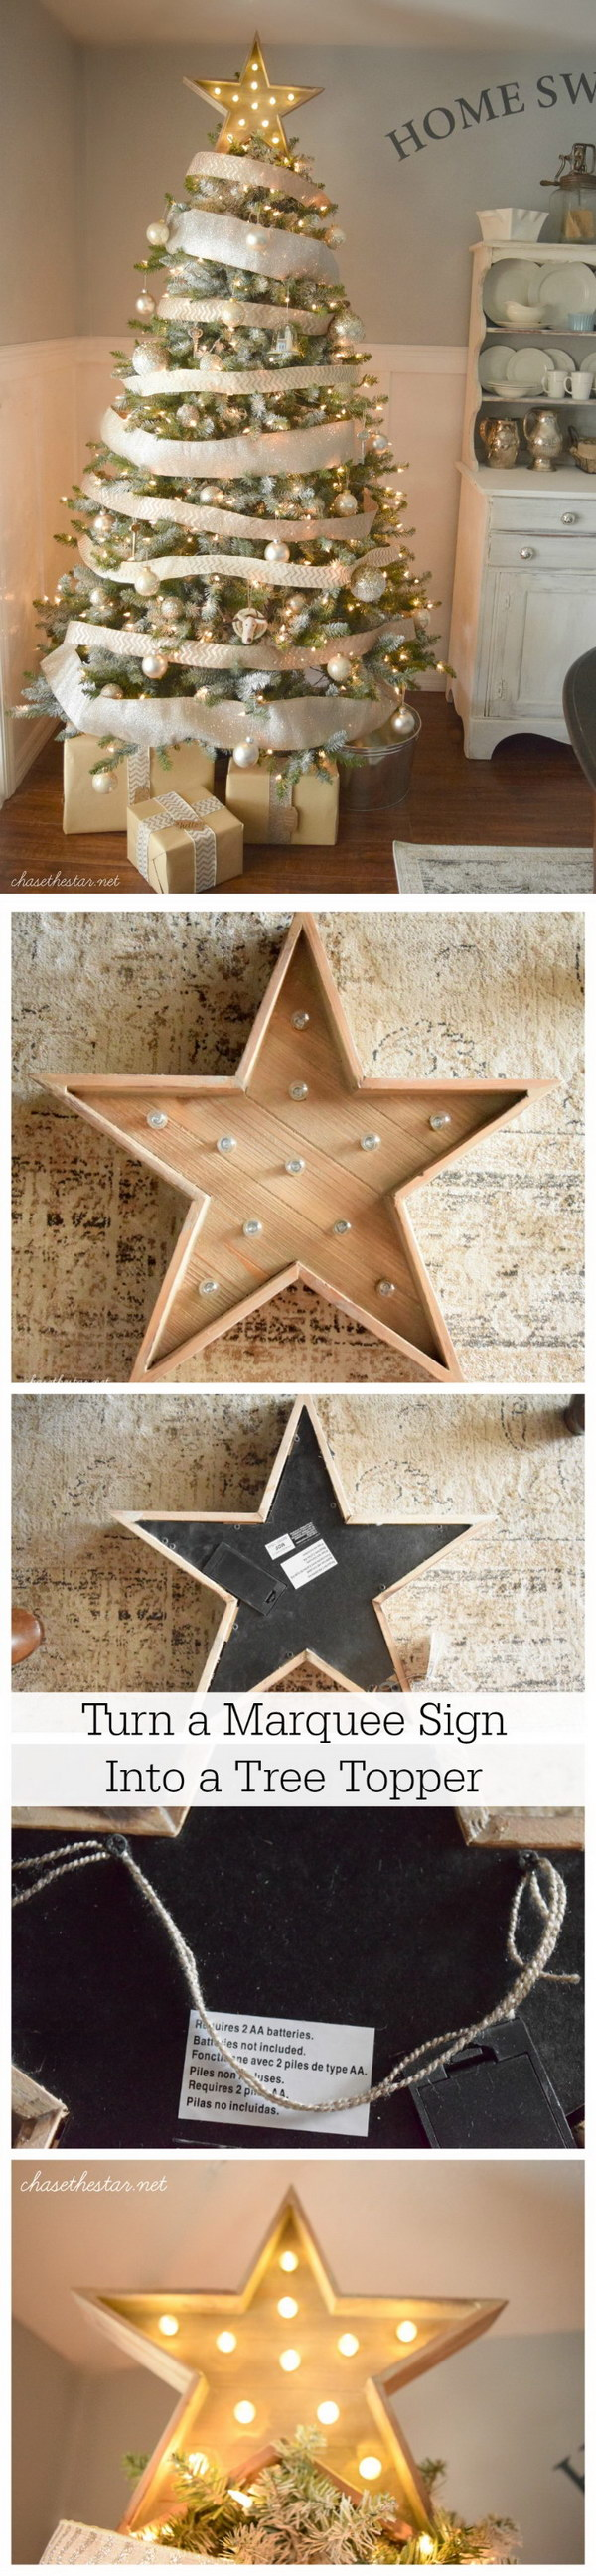 Marquee Star Tree Topper